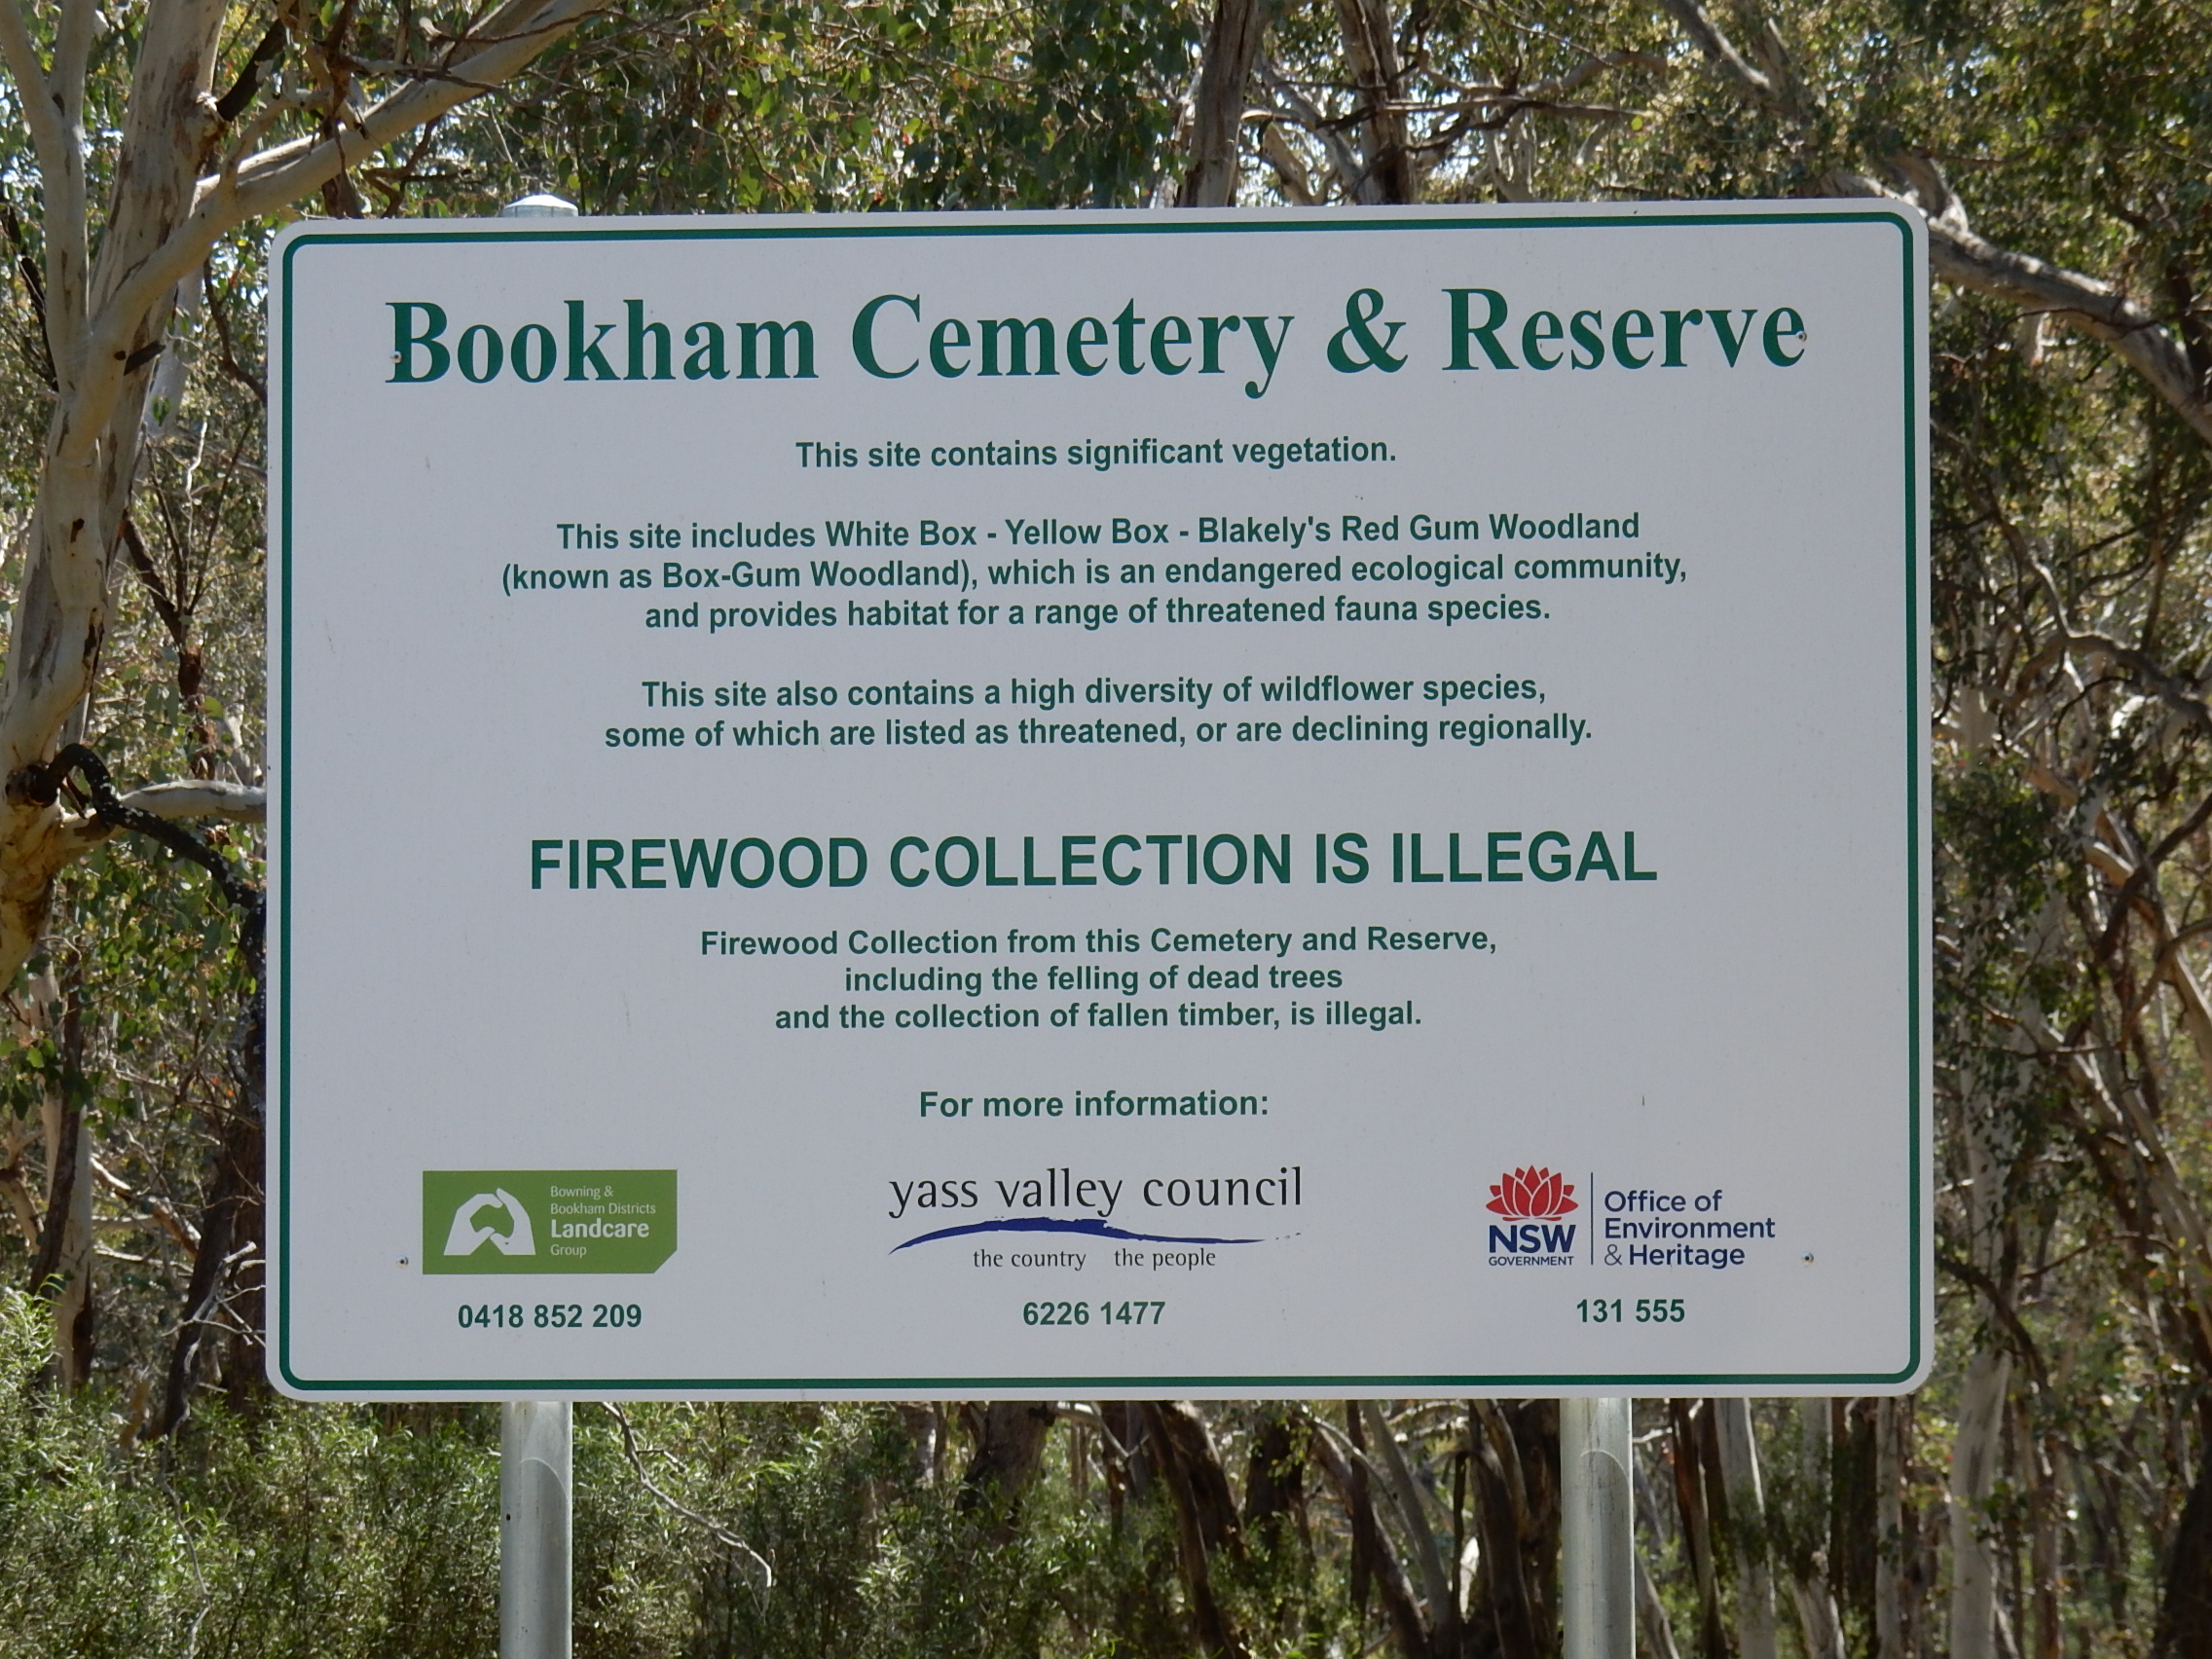 Bookham Cemetery & Reserve in Bookham, New South Wales